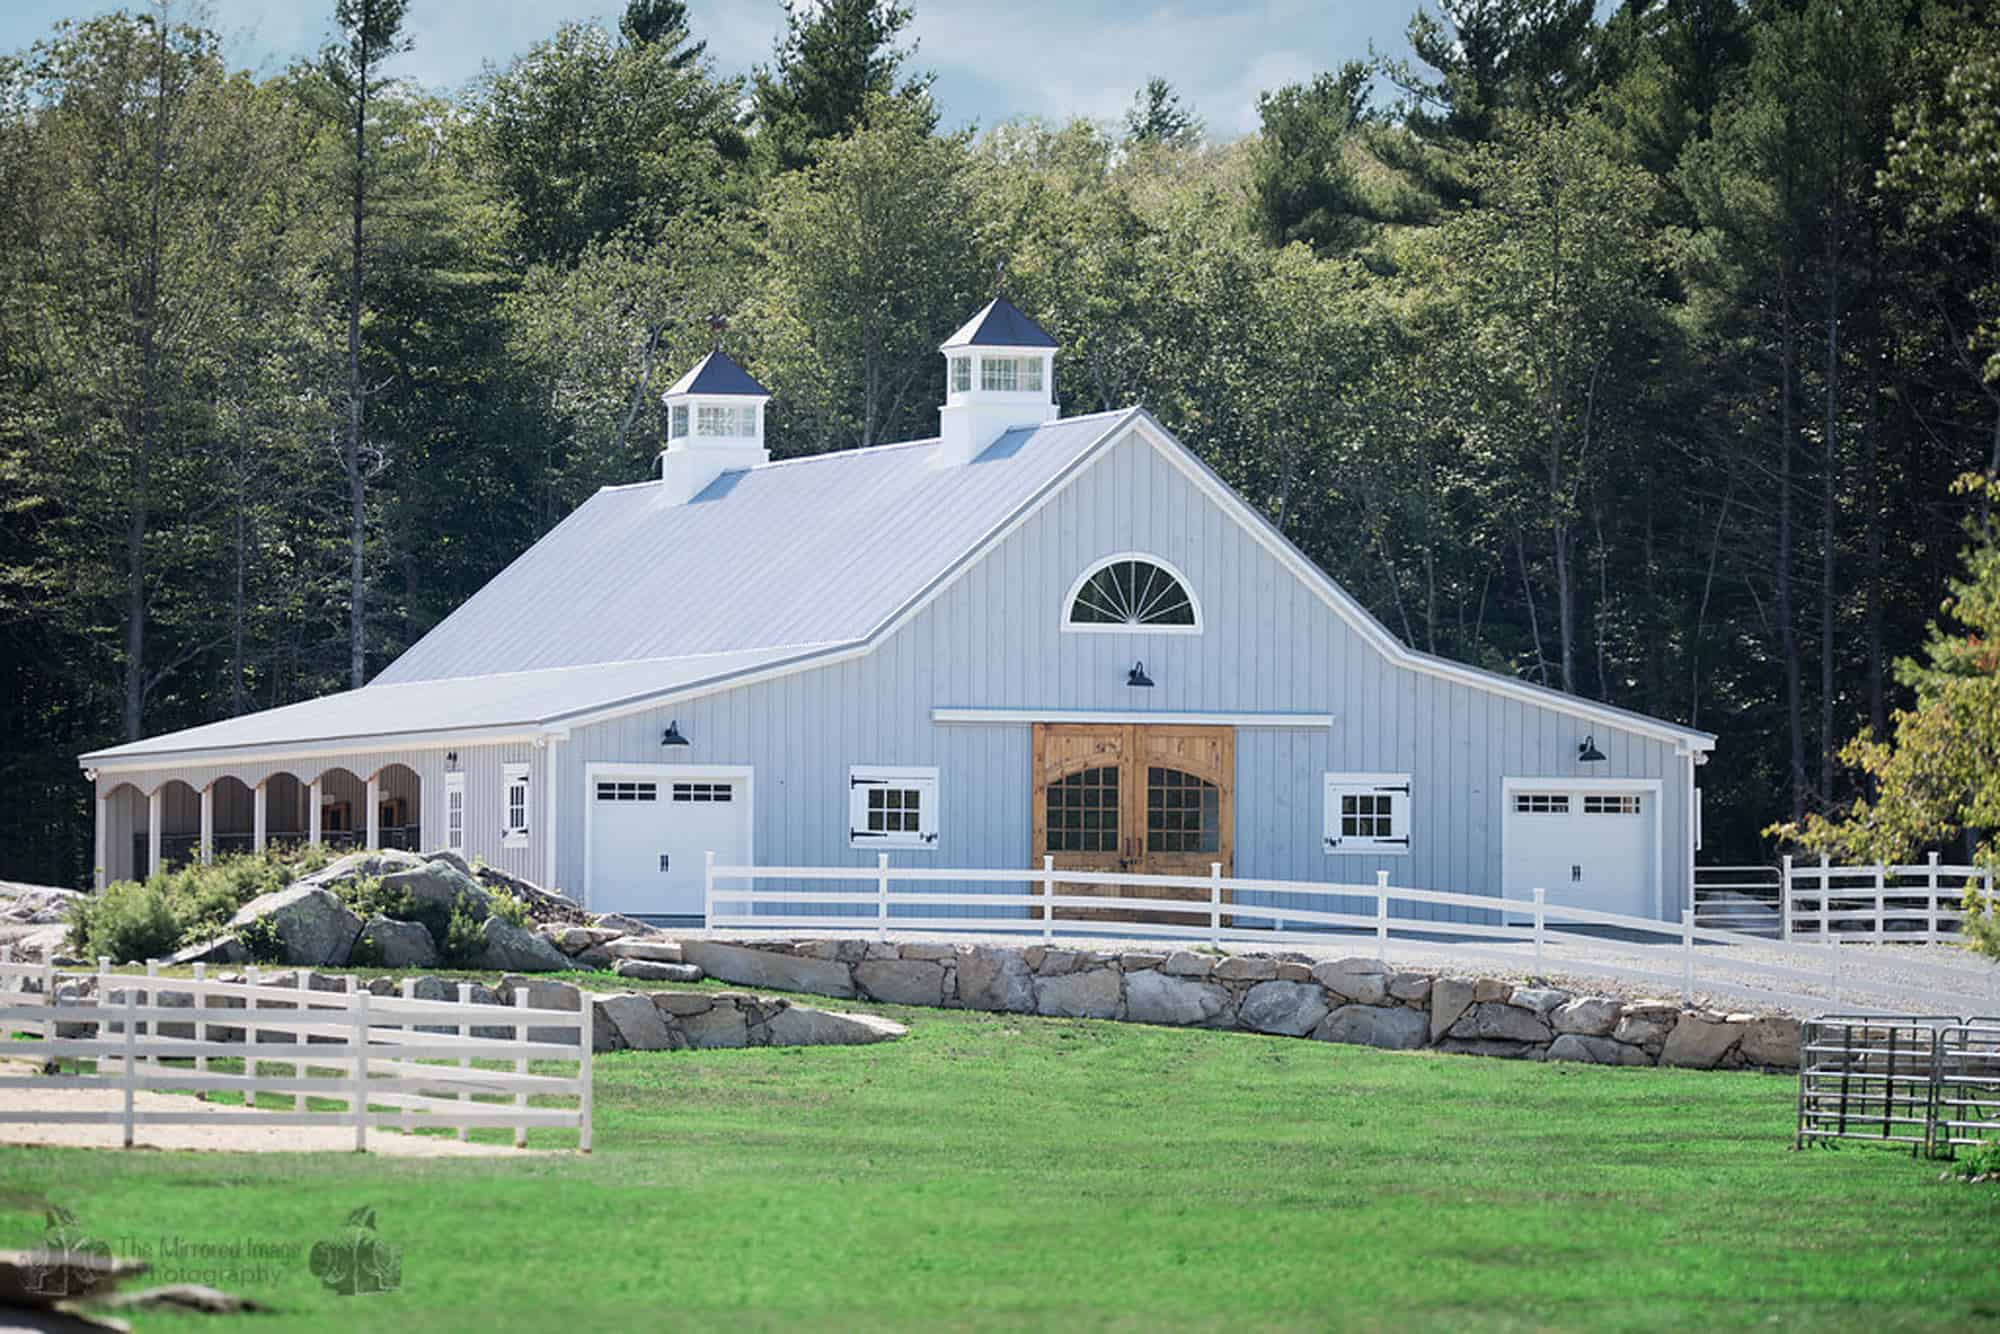 Horse barn designs by Quarry View Building Group